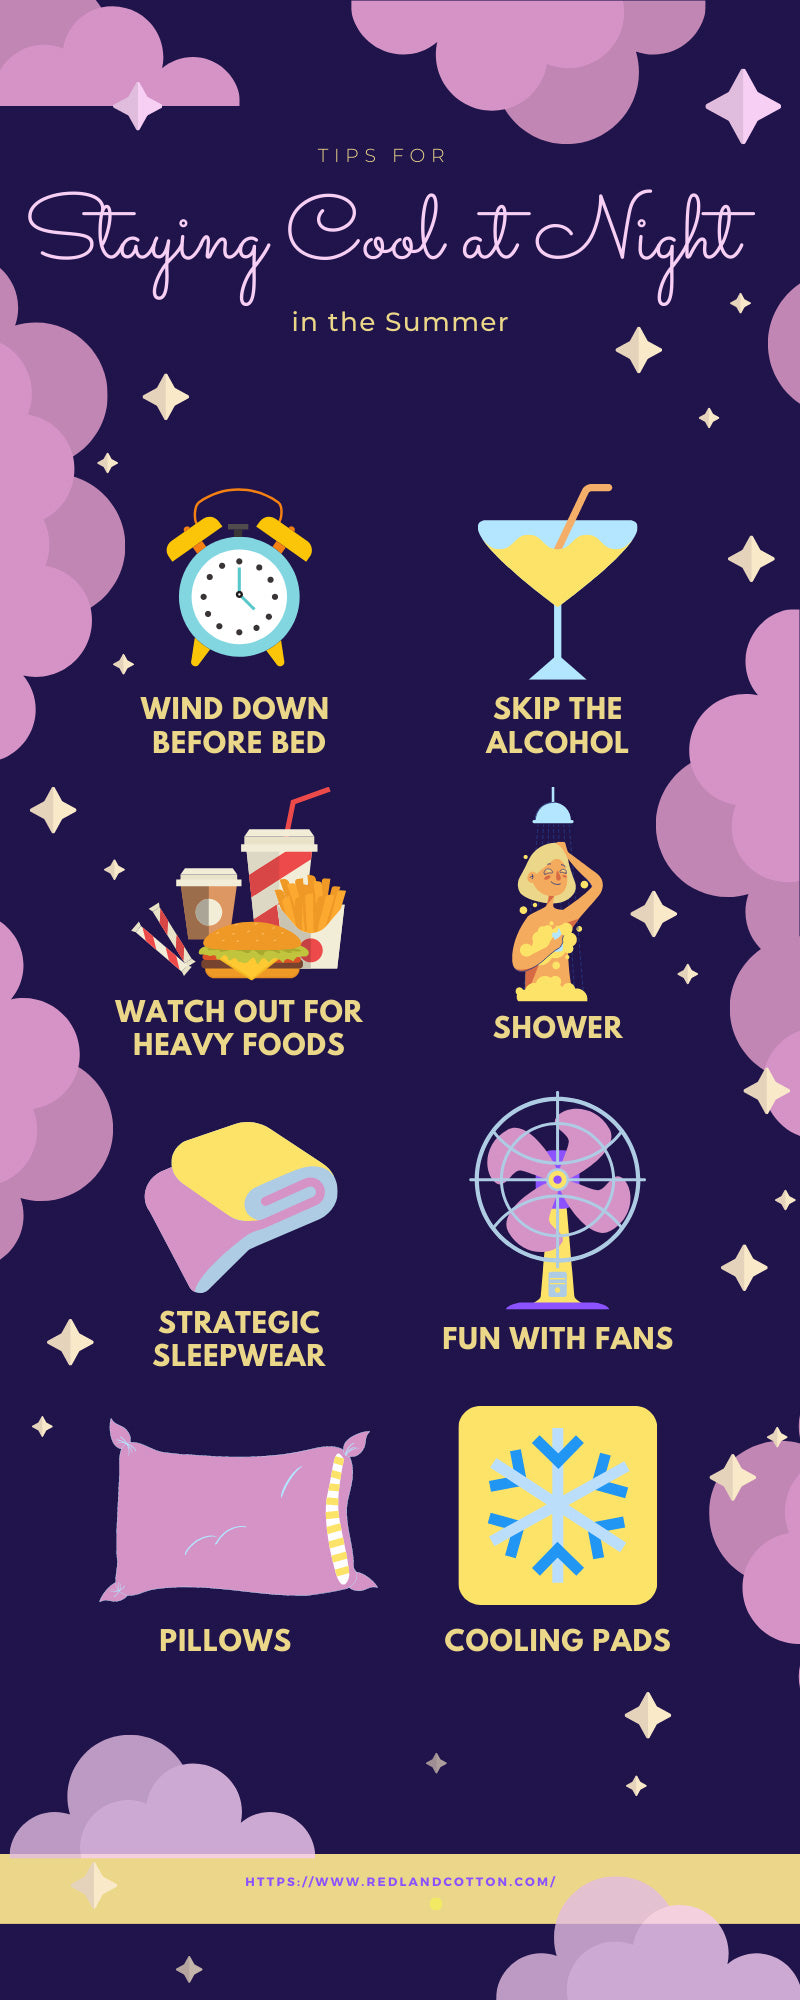 Tips for Staying Cool at Night in the Summer